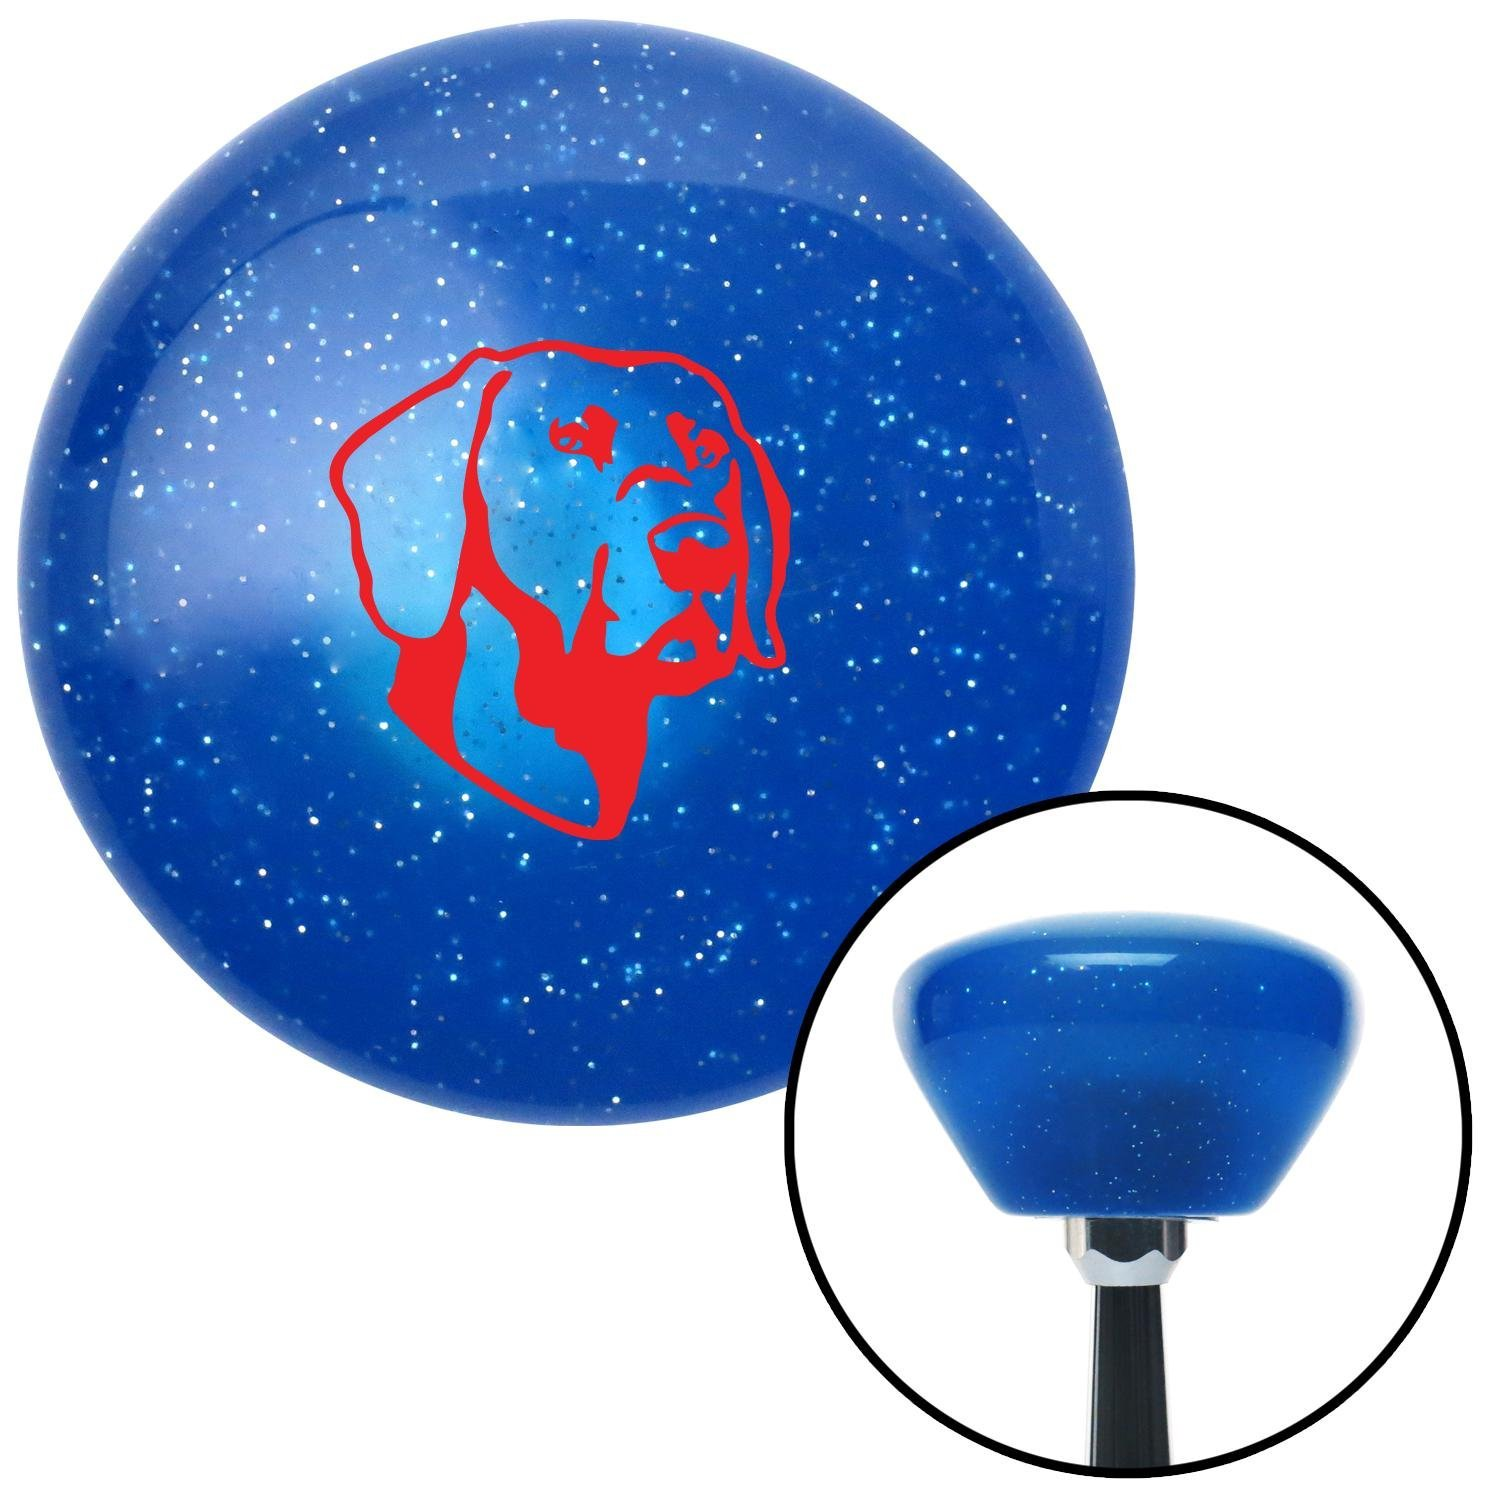 American Shifter 190964 Blue Retro Metal Flake Shift Knob with M16 x 1.5 Insert Red Dog